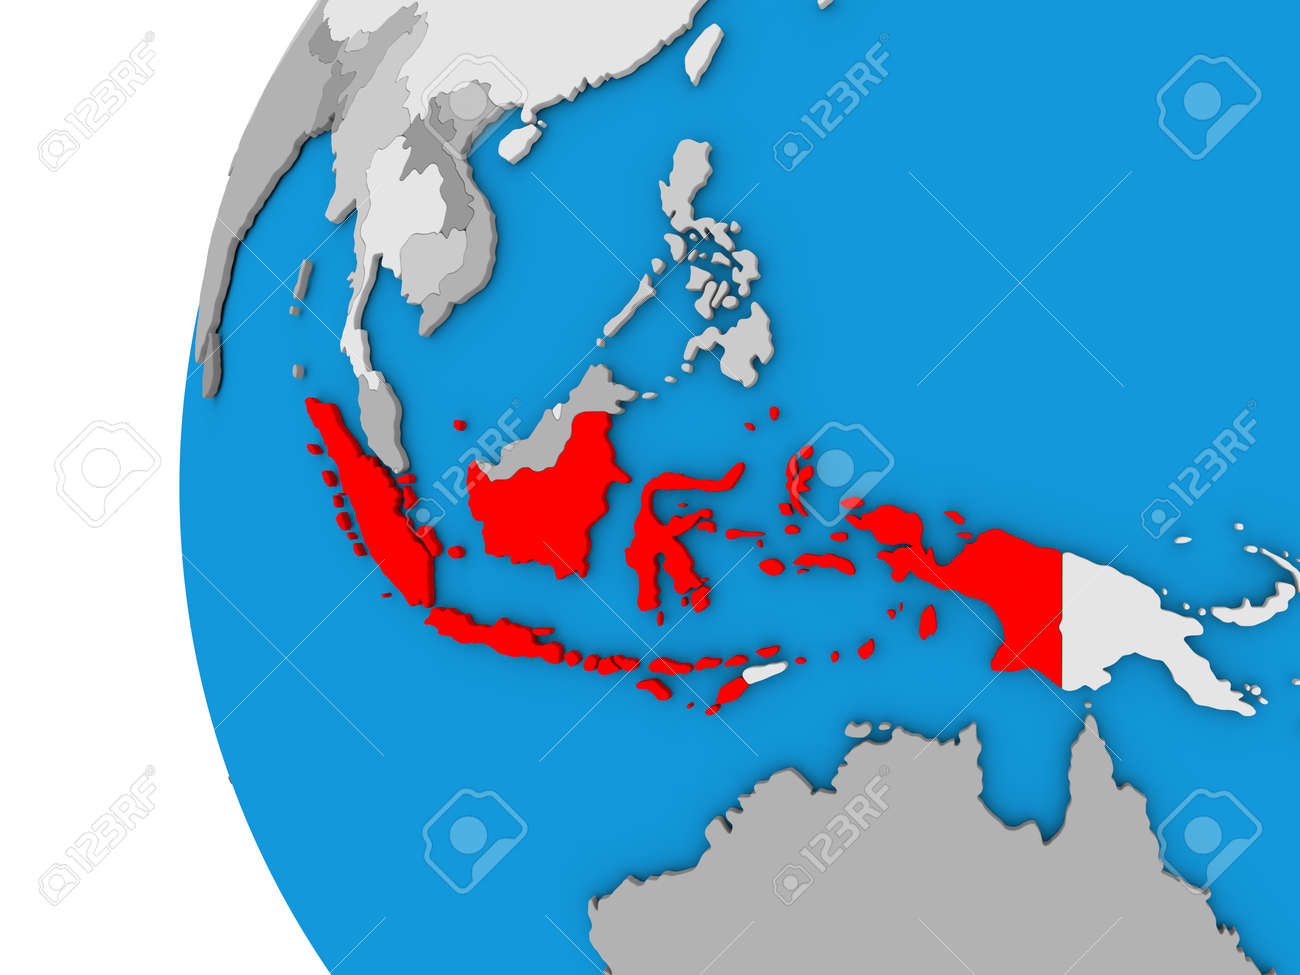 3D map of Indonesia focused in red